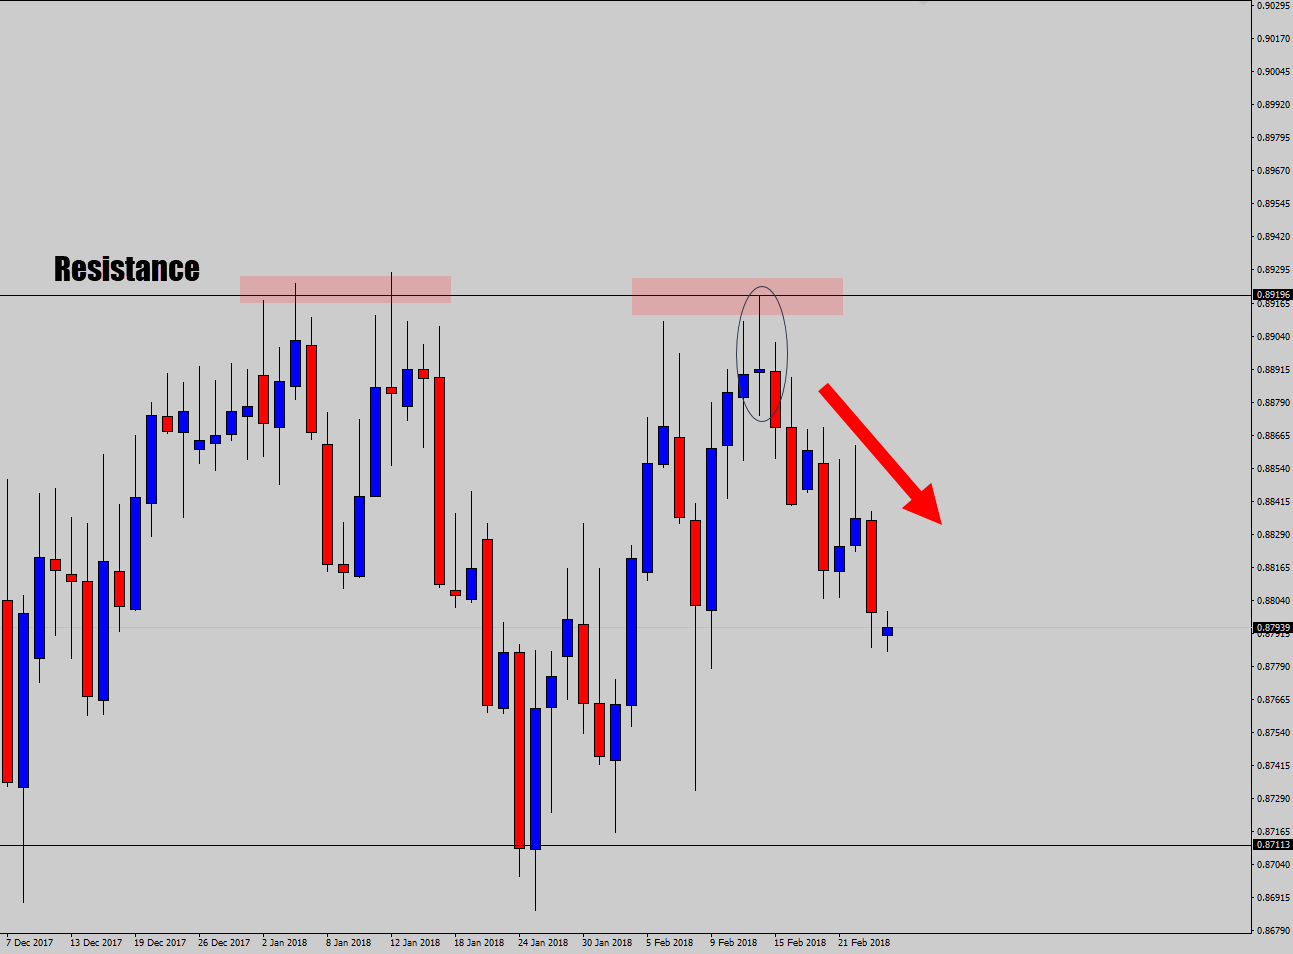 doji trade setup at resistance after